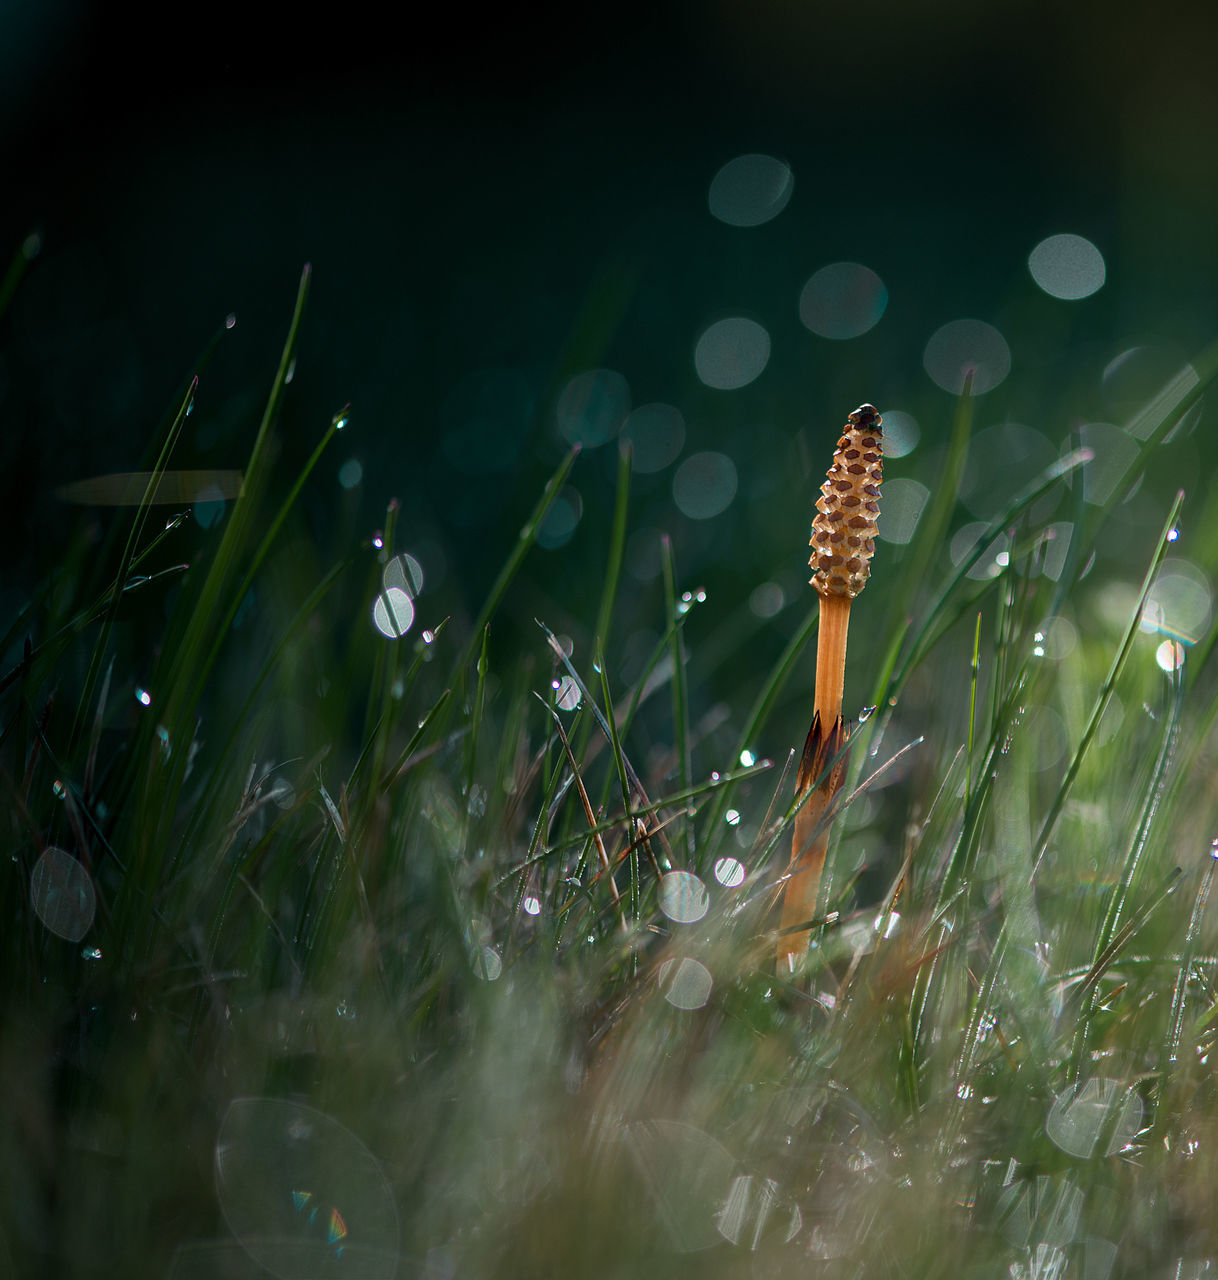 grass, nature, selective focus, close-up, no people, growth, beauty in nature, outdoors, plant, mushroom, fragility, day, freshness, toadstool